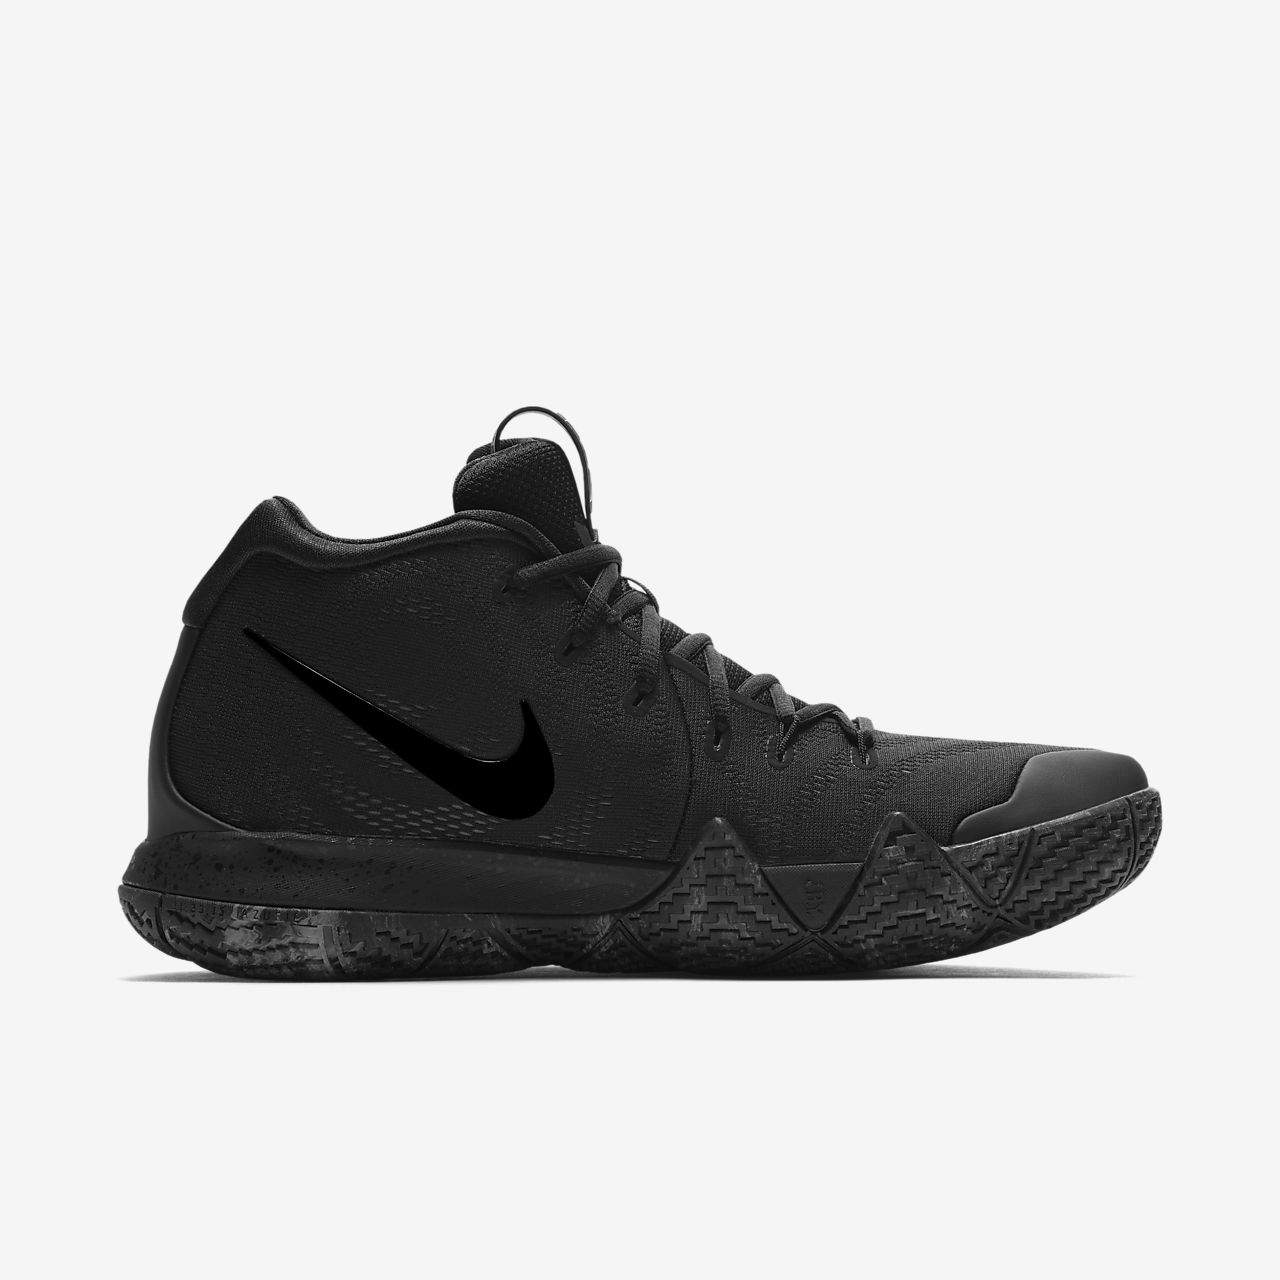 ac98fdaa9e8a53 Low Resolution Kyrie 4 Basketball Shoe Kyrie 4 Basketball Shoe